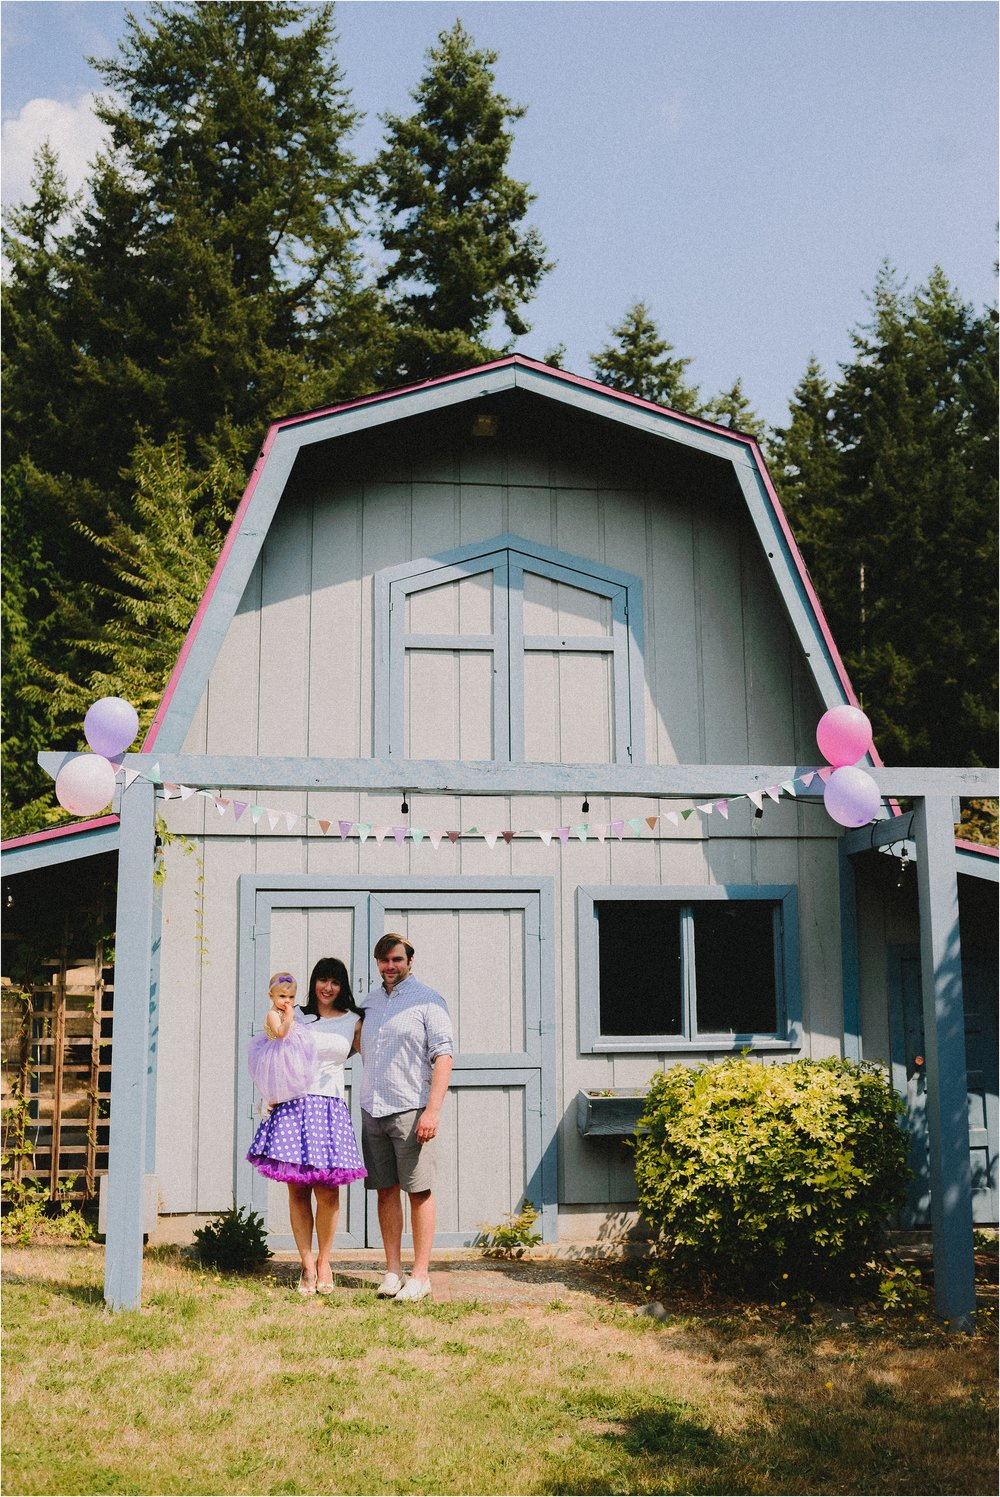 unicorn-first-birthday-party-vashon-island-jannicka-mayte-anchorage-alaska-photographer_0008.jpg